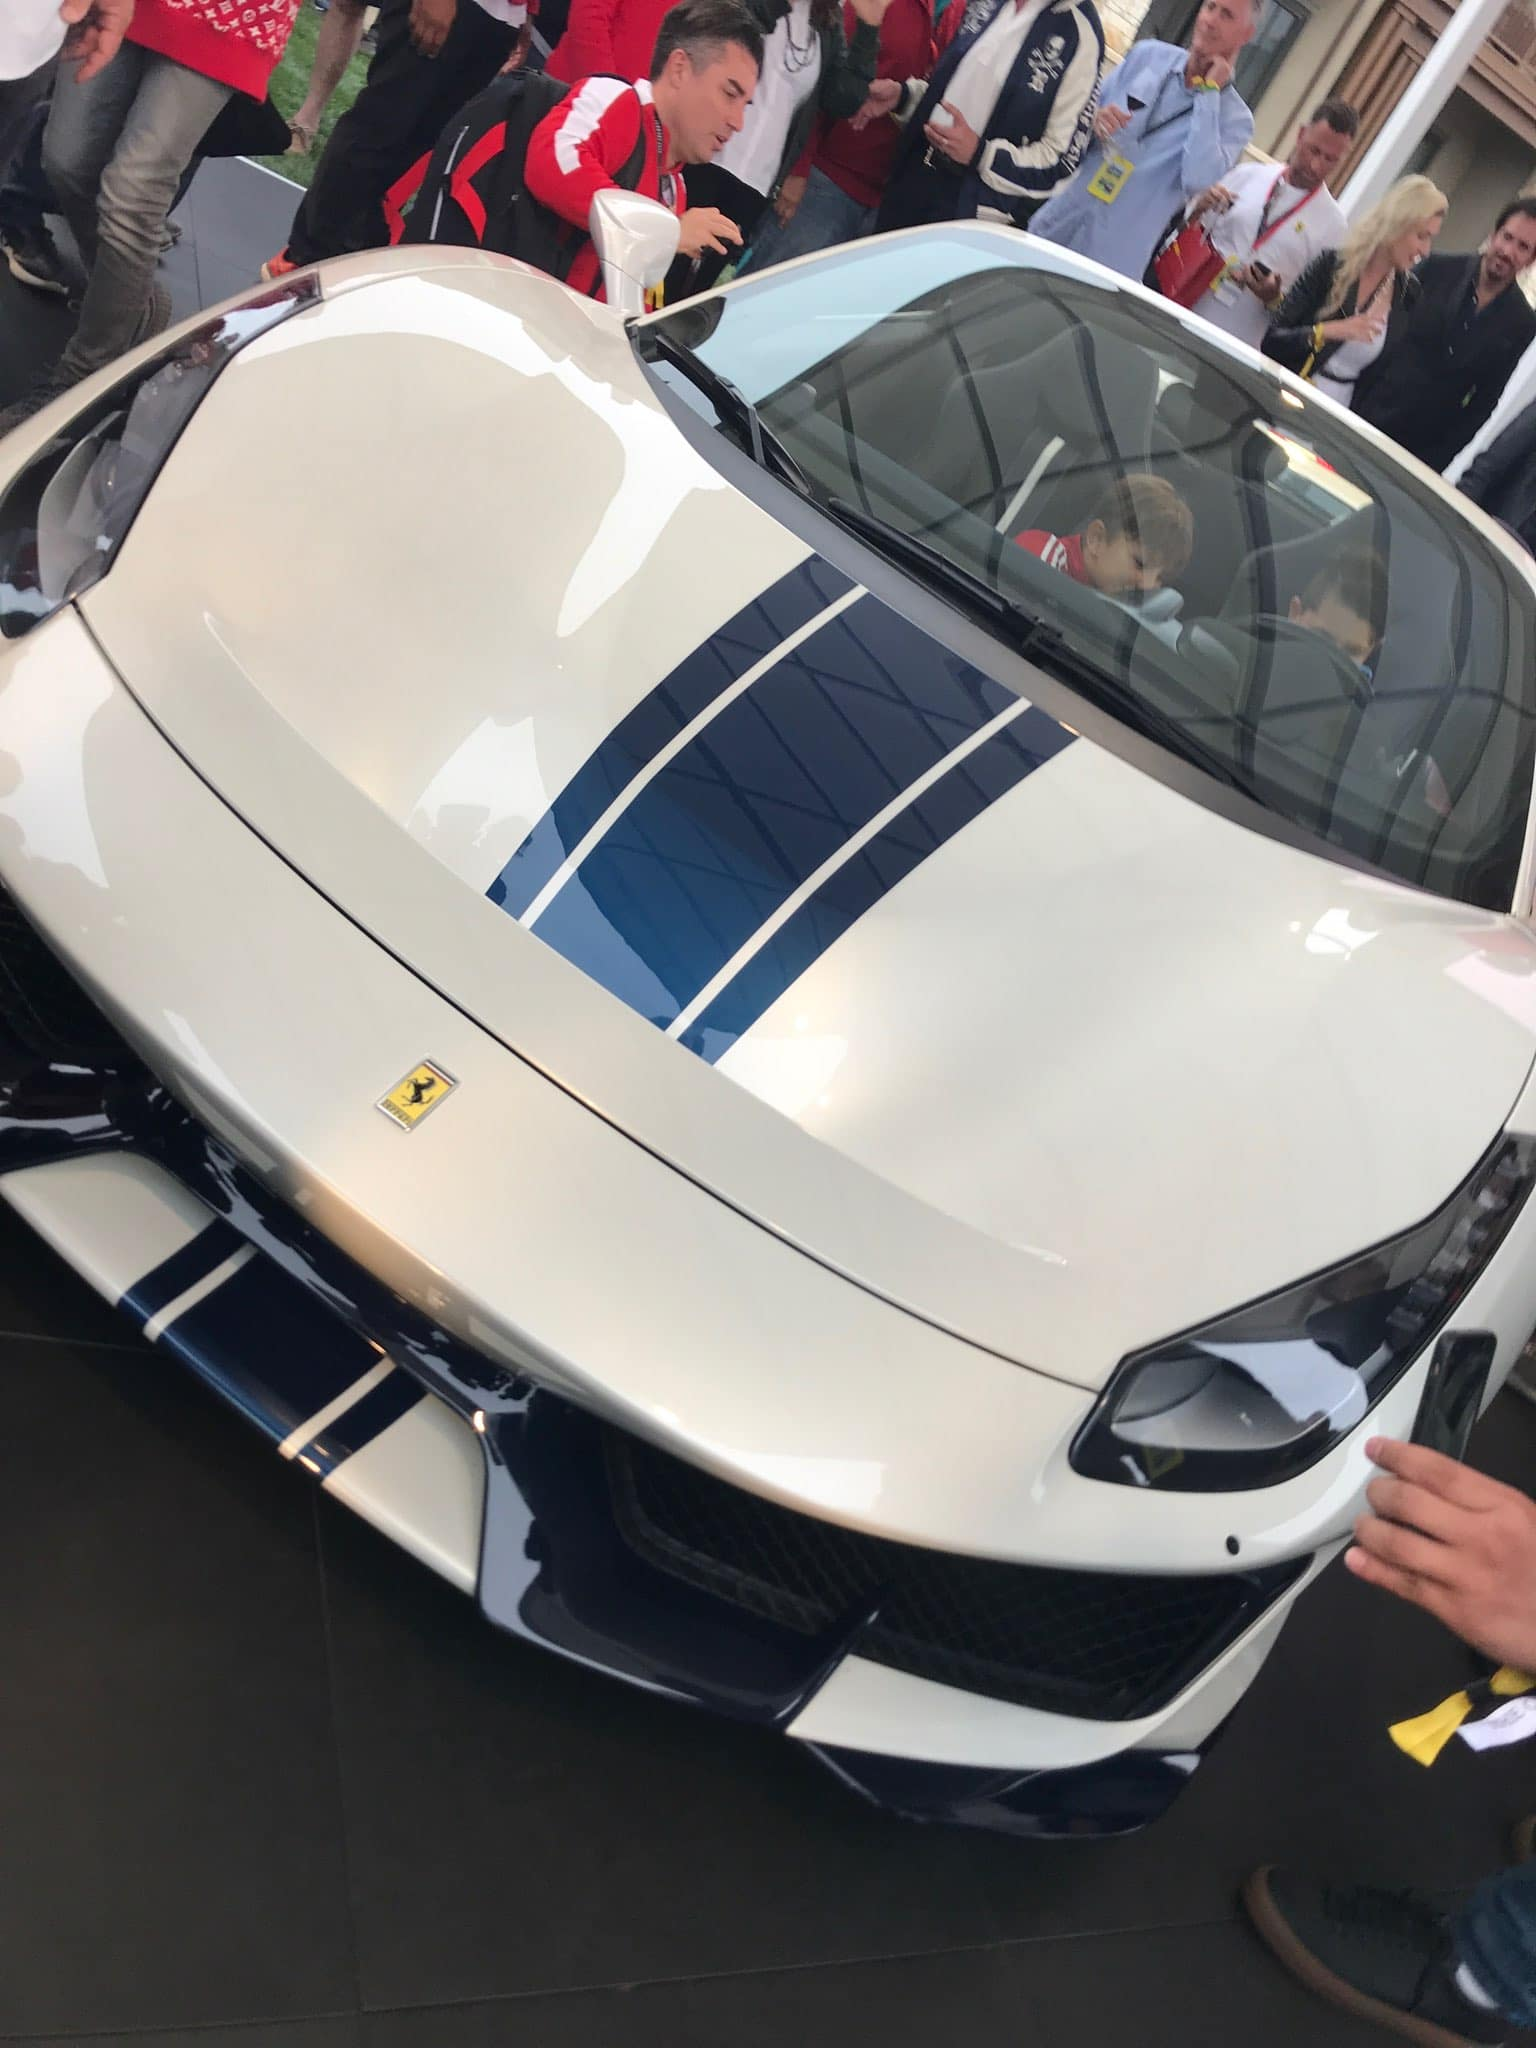 Pebble Beach 488 Pista Spider 2